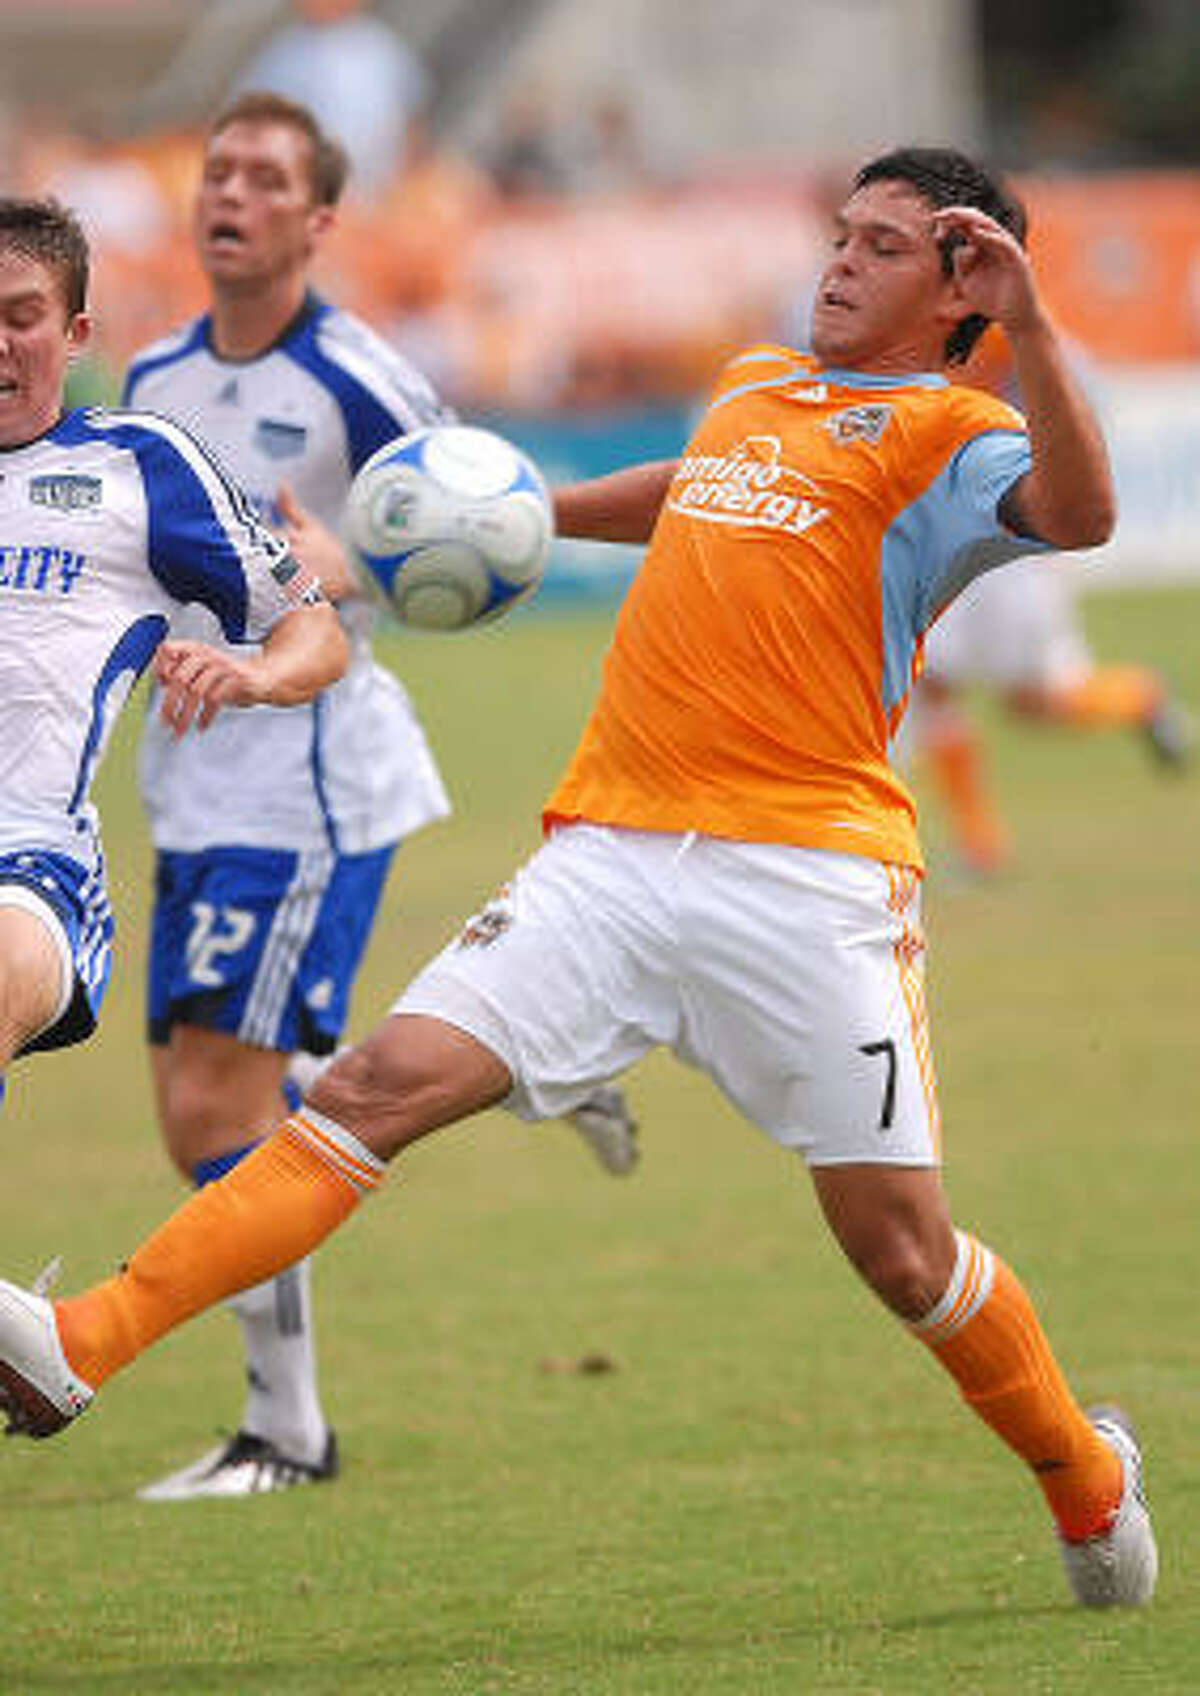 Dynamo forward Luis Angel Landin (right) scored a goal to help Houston capture a 1-1 tie in Sunday's match against the Kansas City Wizards and clinch a berth in the MLS playoffs.